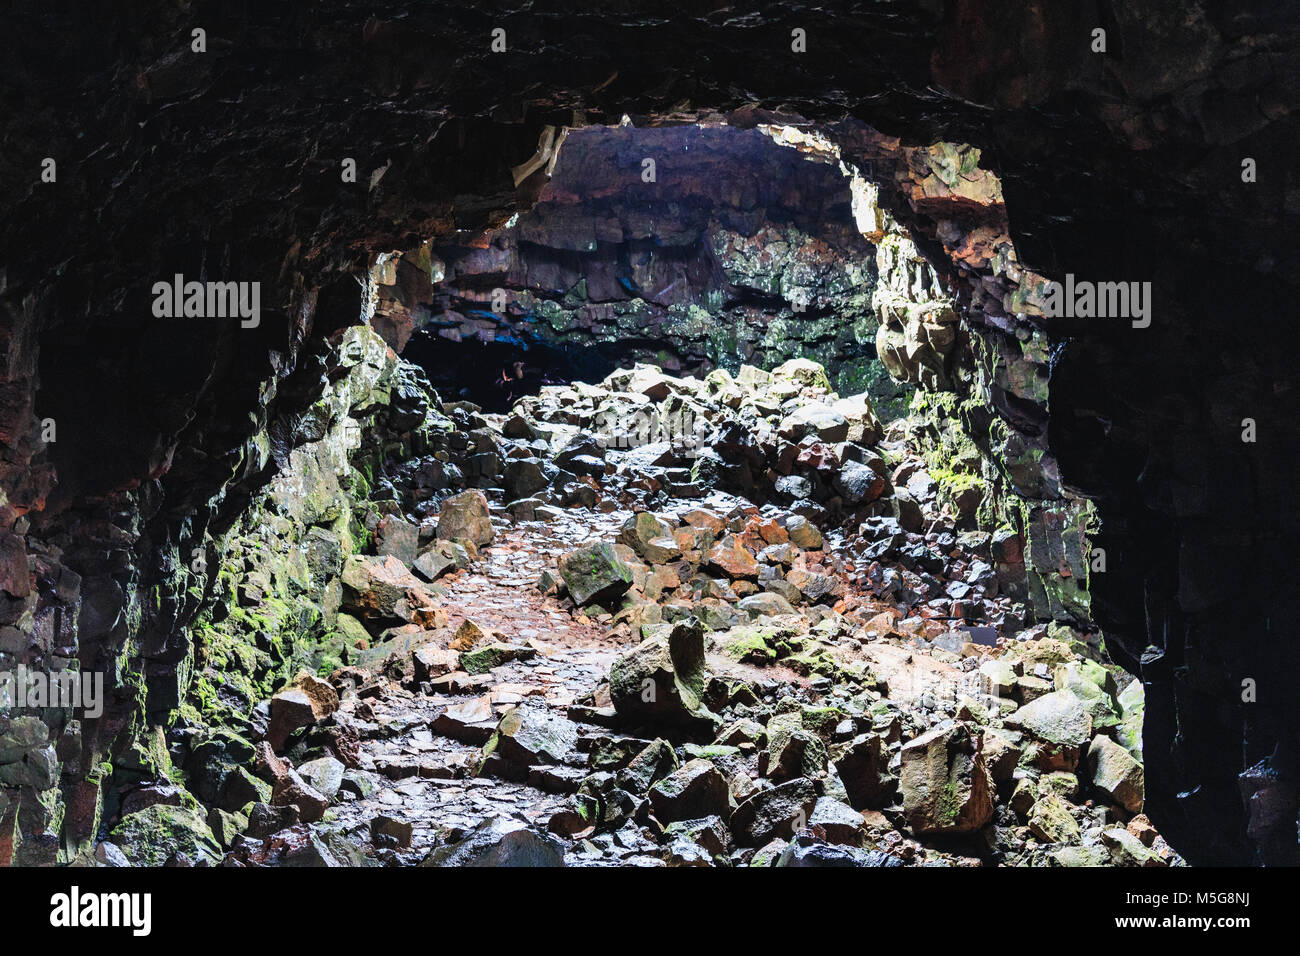 A hike through a lava cave in iceland tunnels are very narrow and partially blocked - Stock Image